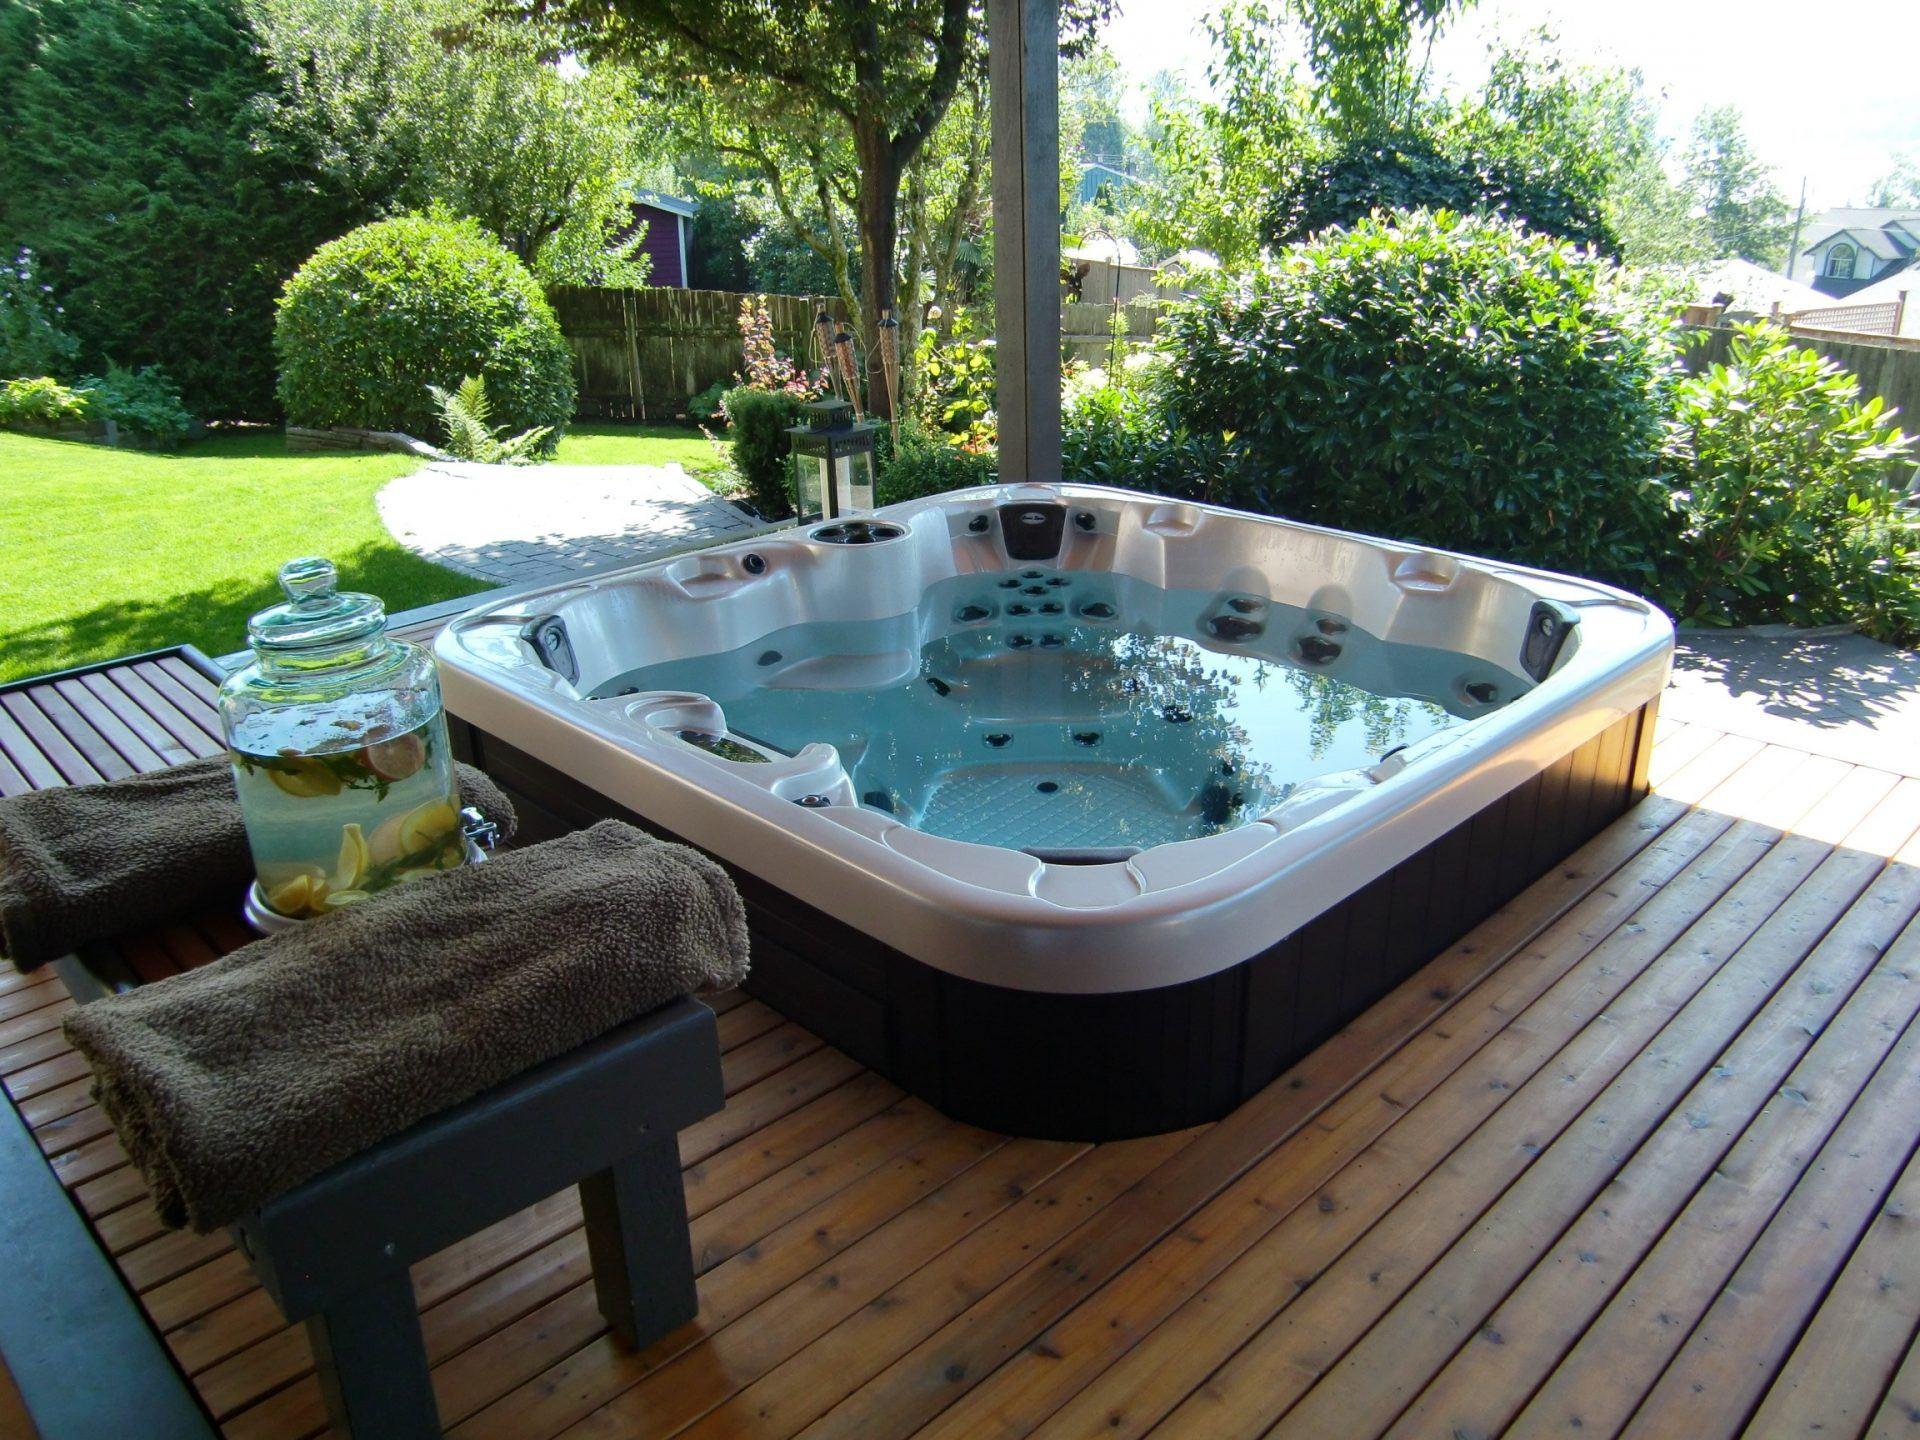 avoir un jacuzzi chez soi photo de softub spa jacuzzi dordogne irrijardin masterspas avoir un. Black Bedroom Furniture Sets. Home Design Ideas